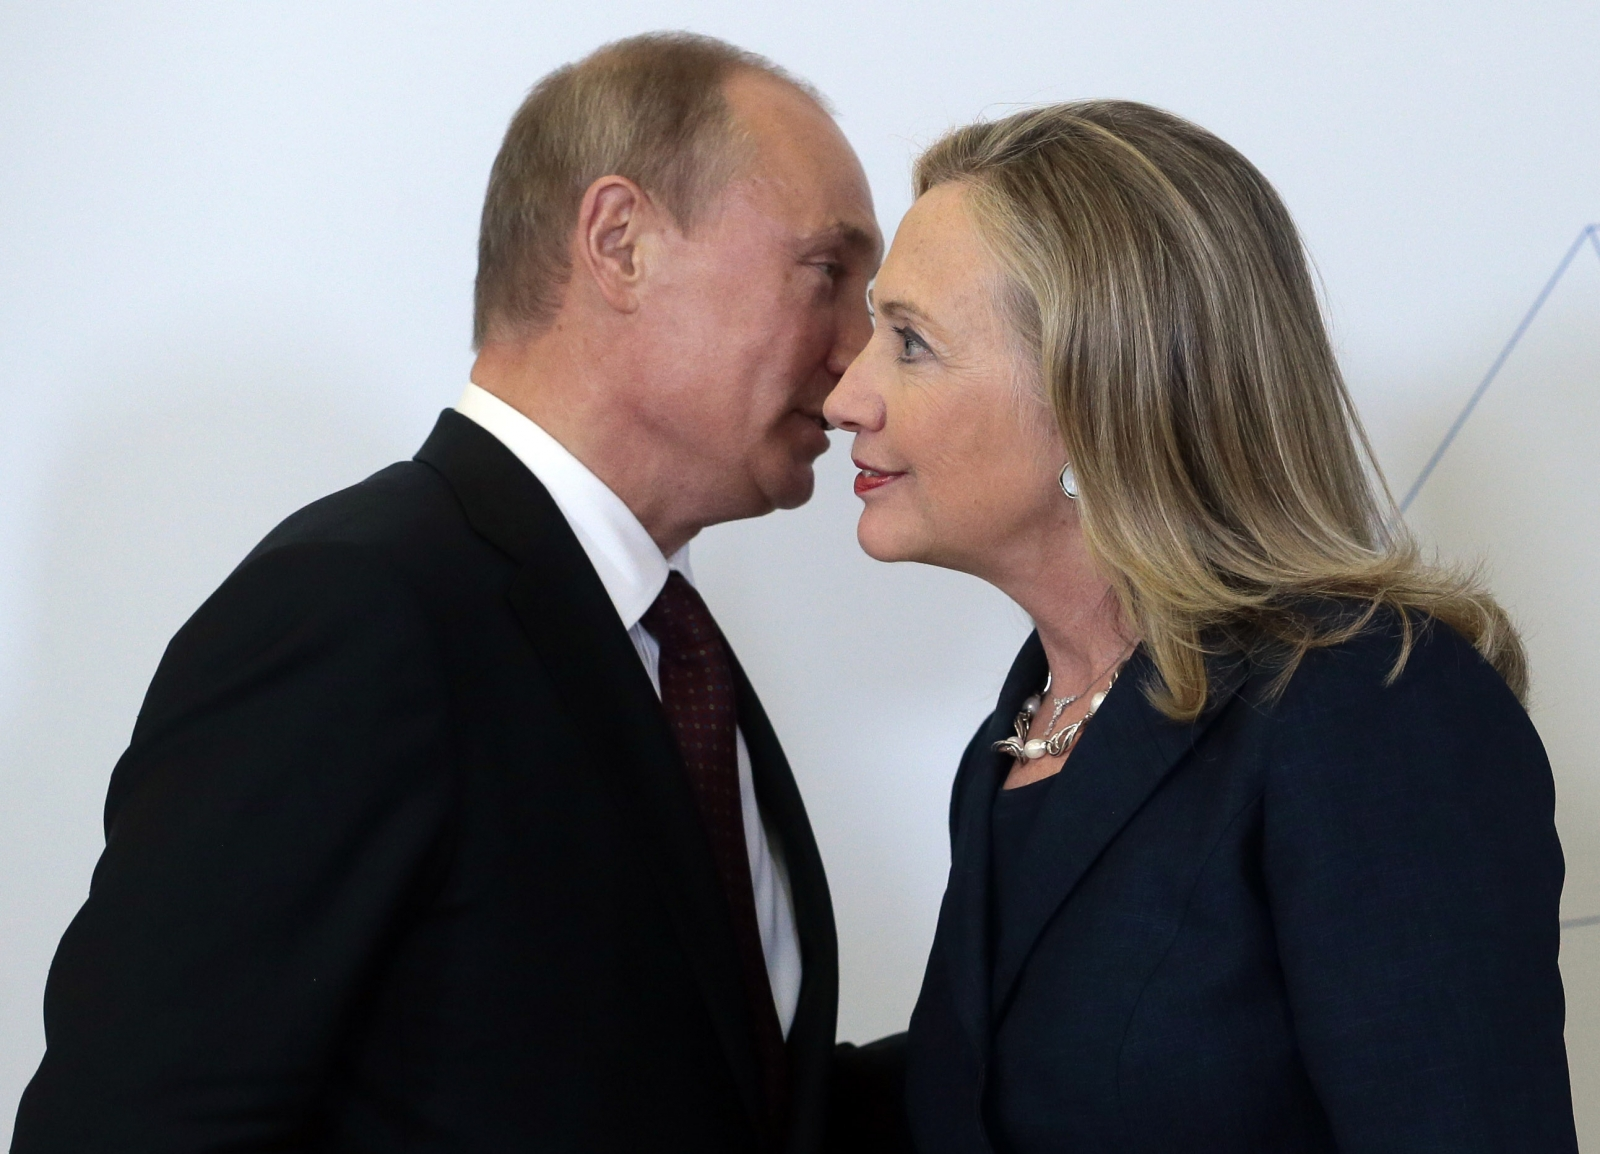 Clinton and Putin at APEC 2012